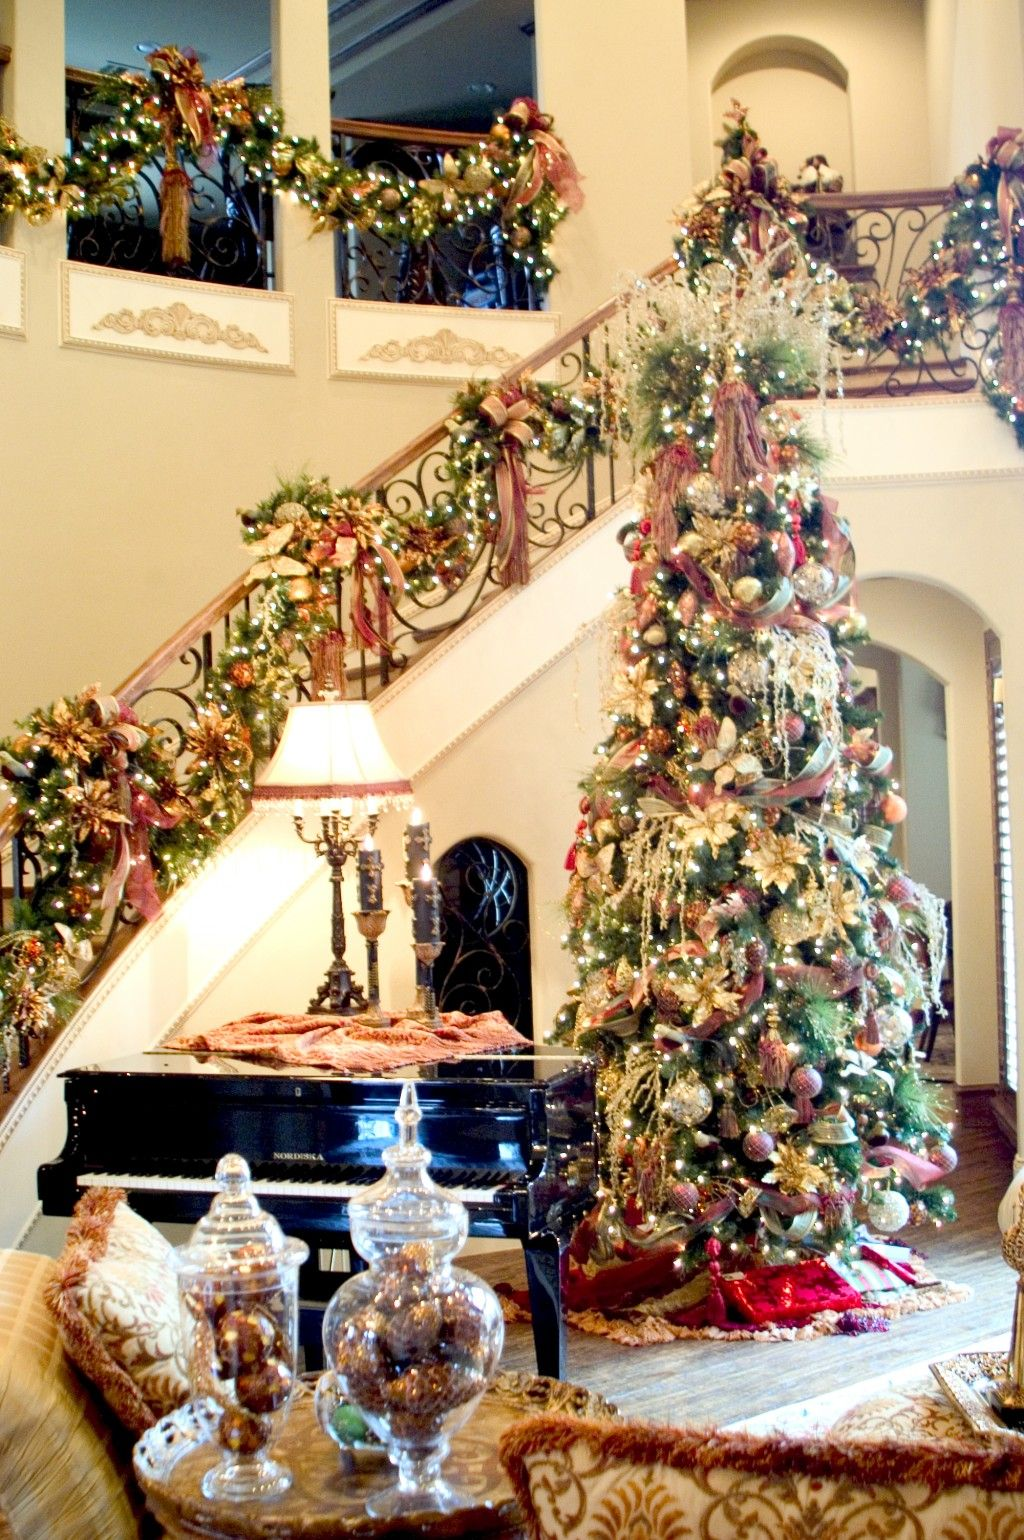 Better homes and gardens christmas decorating ideas - Xmas Tree Decorating Ideas With Elegant Large Christmas Tree Design For Christmas Tree Decorating Ideas Better